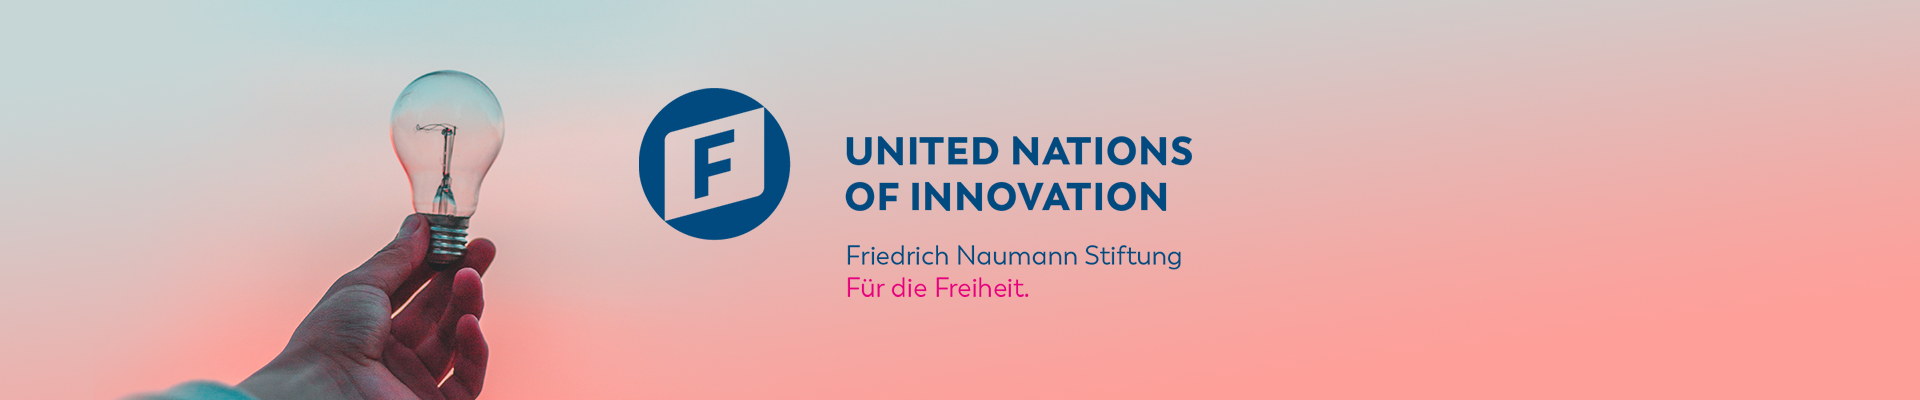 United Nations of Innovation